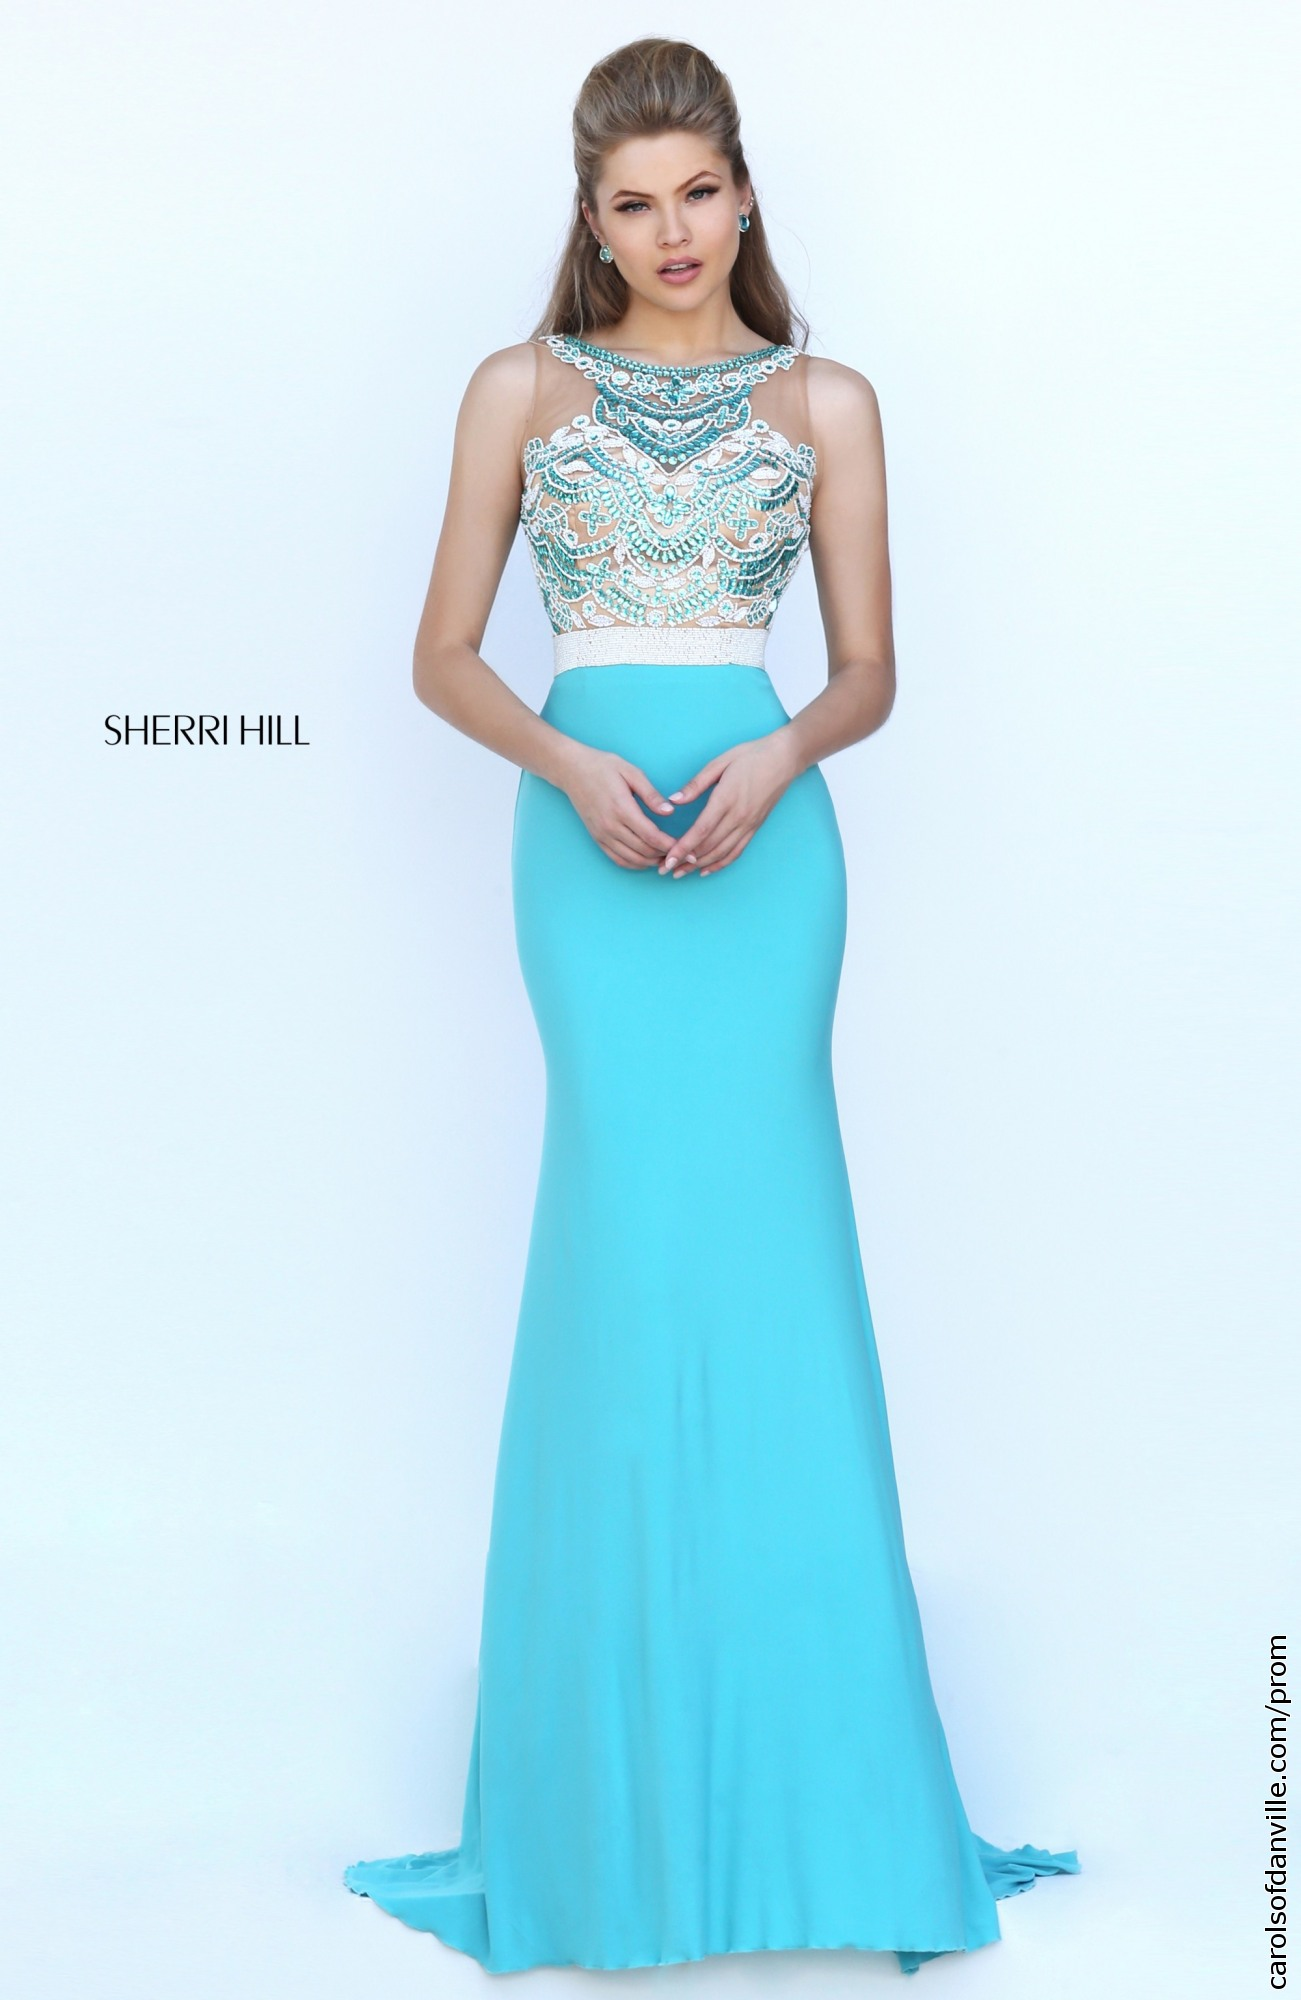 Sherri hill prom dresses 2014 blue